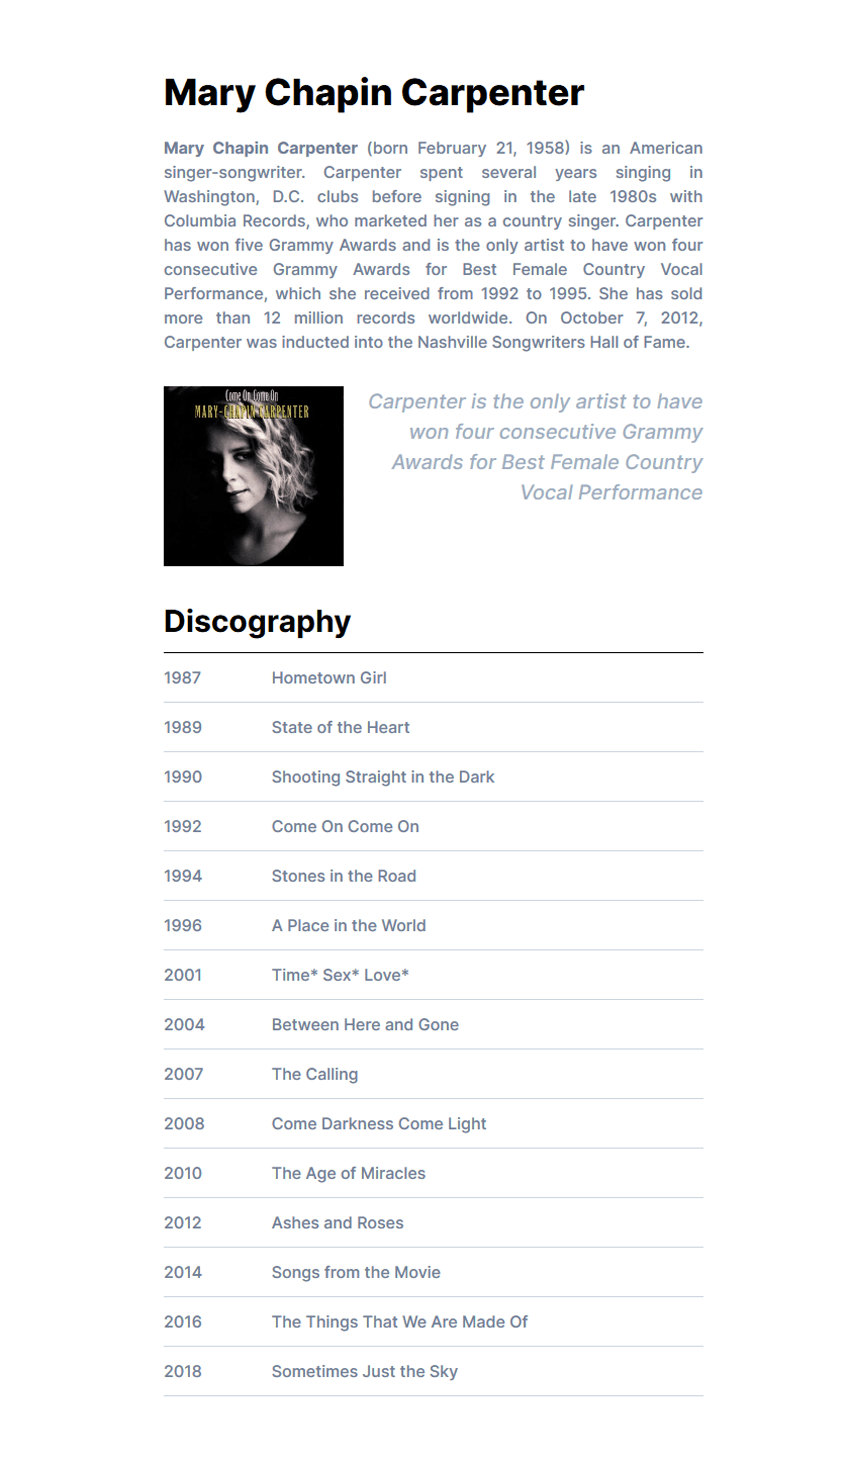 Mary Chapin Carpenter biography created with Inter fonts